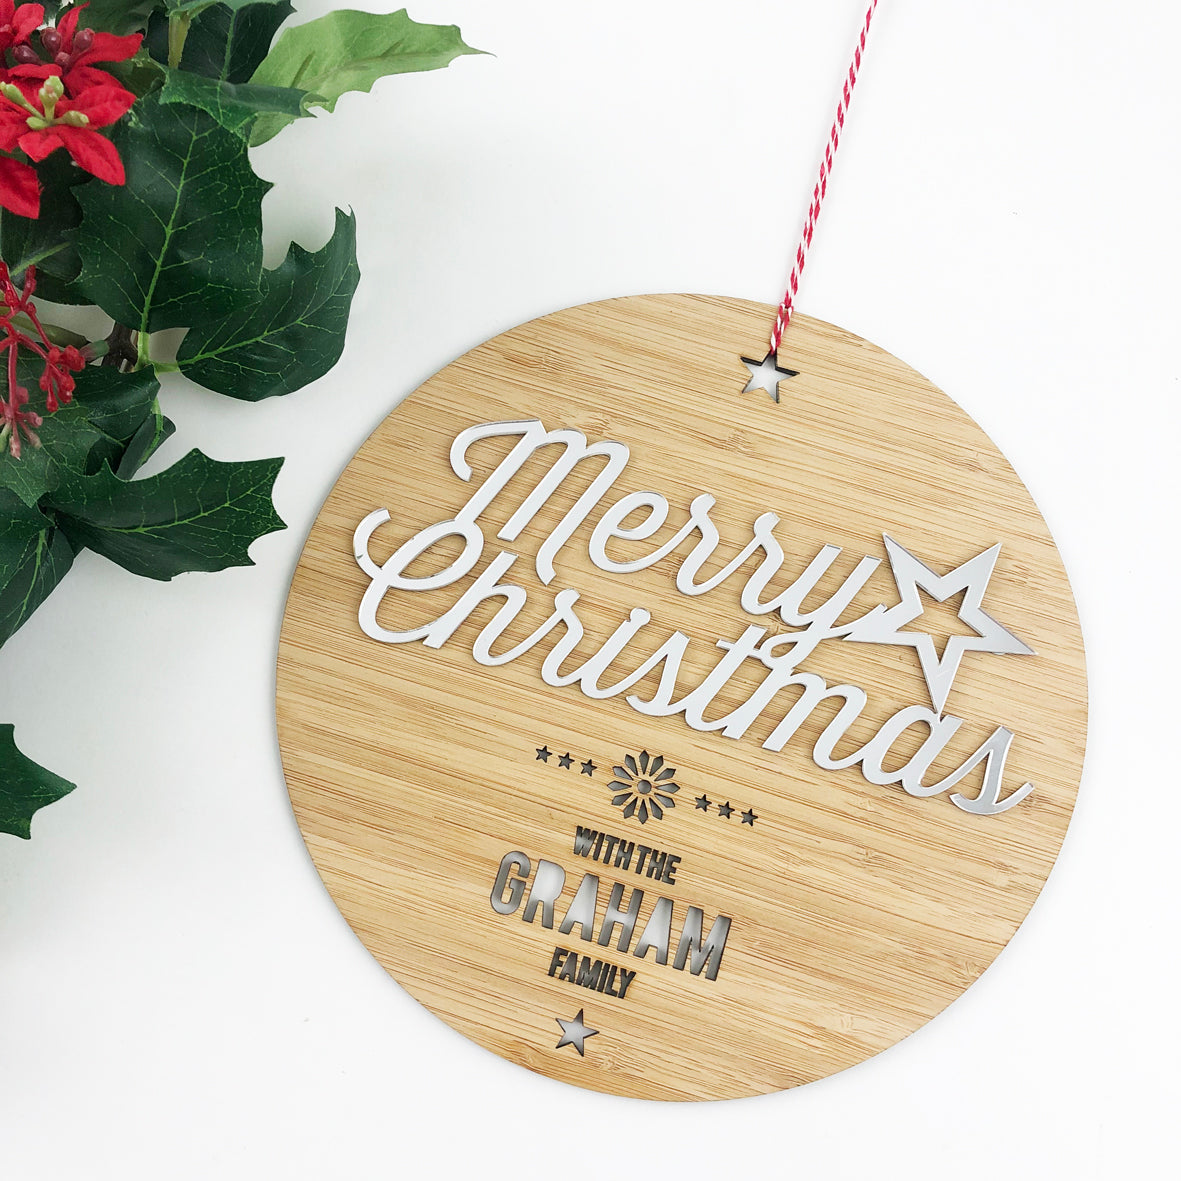 Merry Christmas Mirror Family Wall Hanging